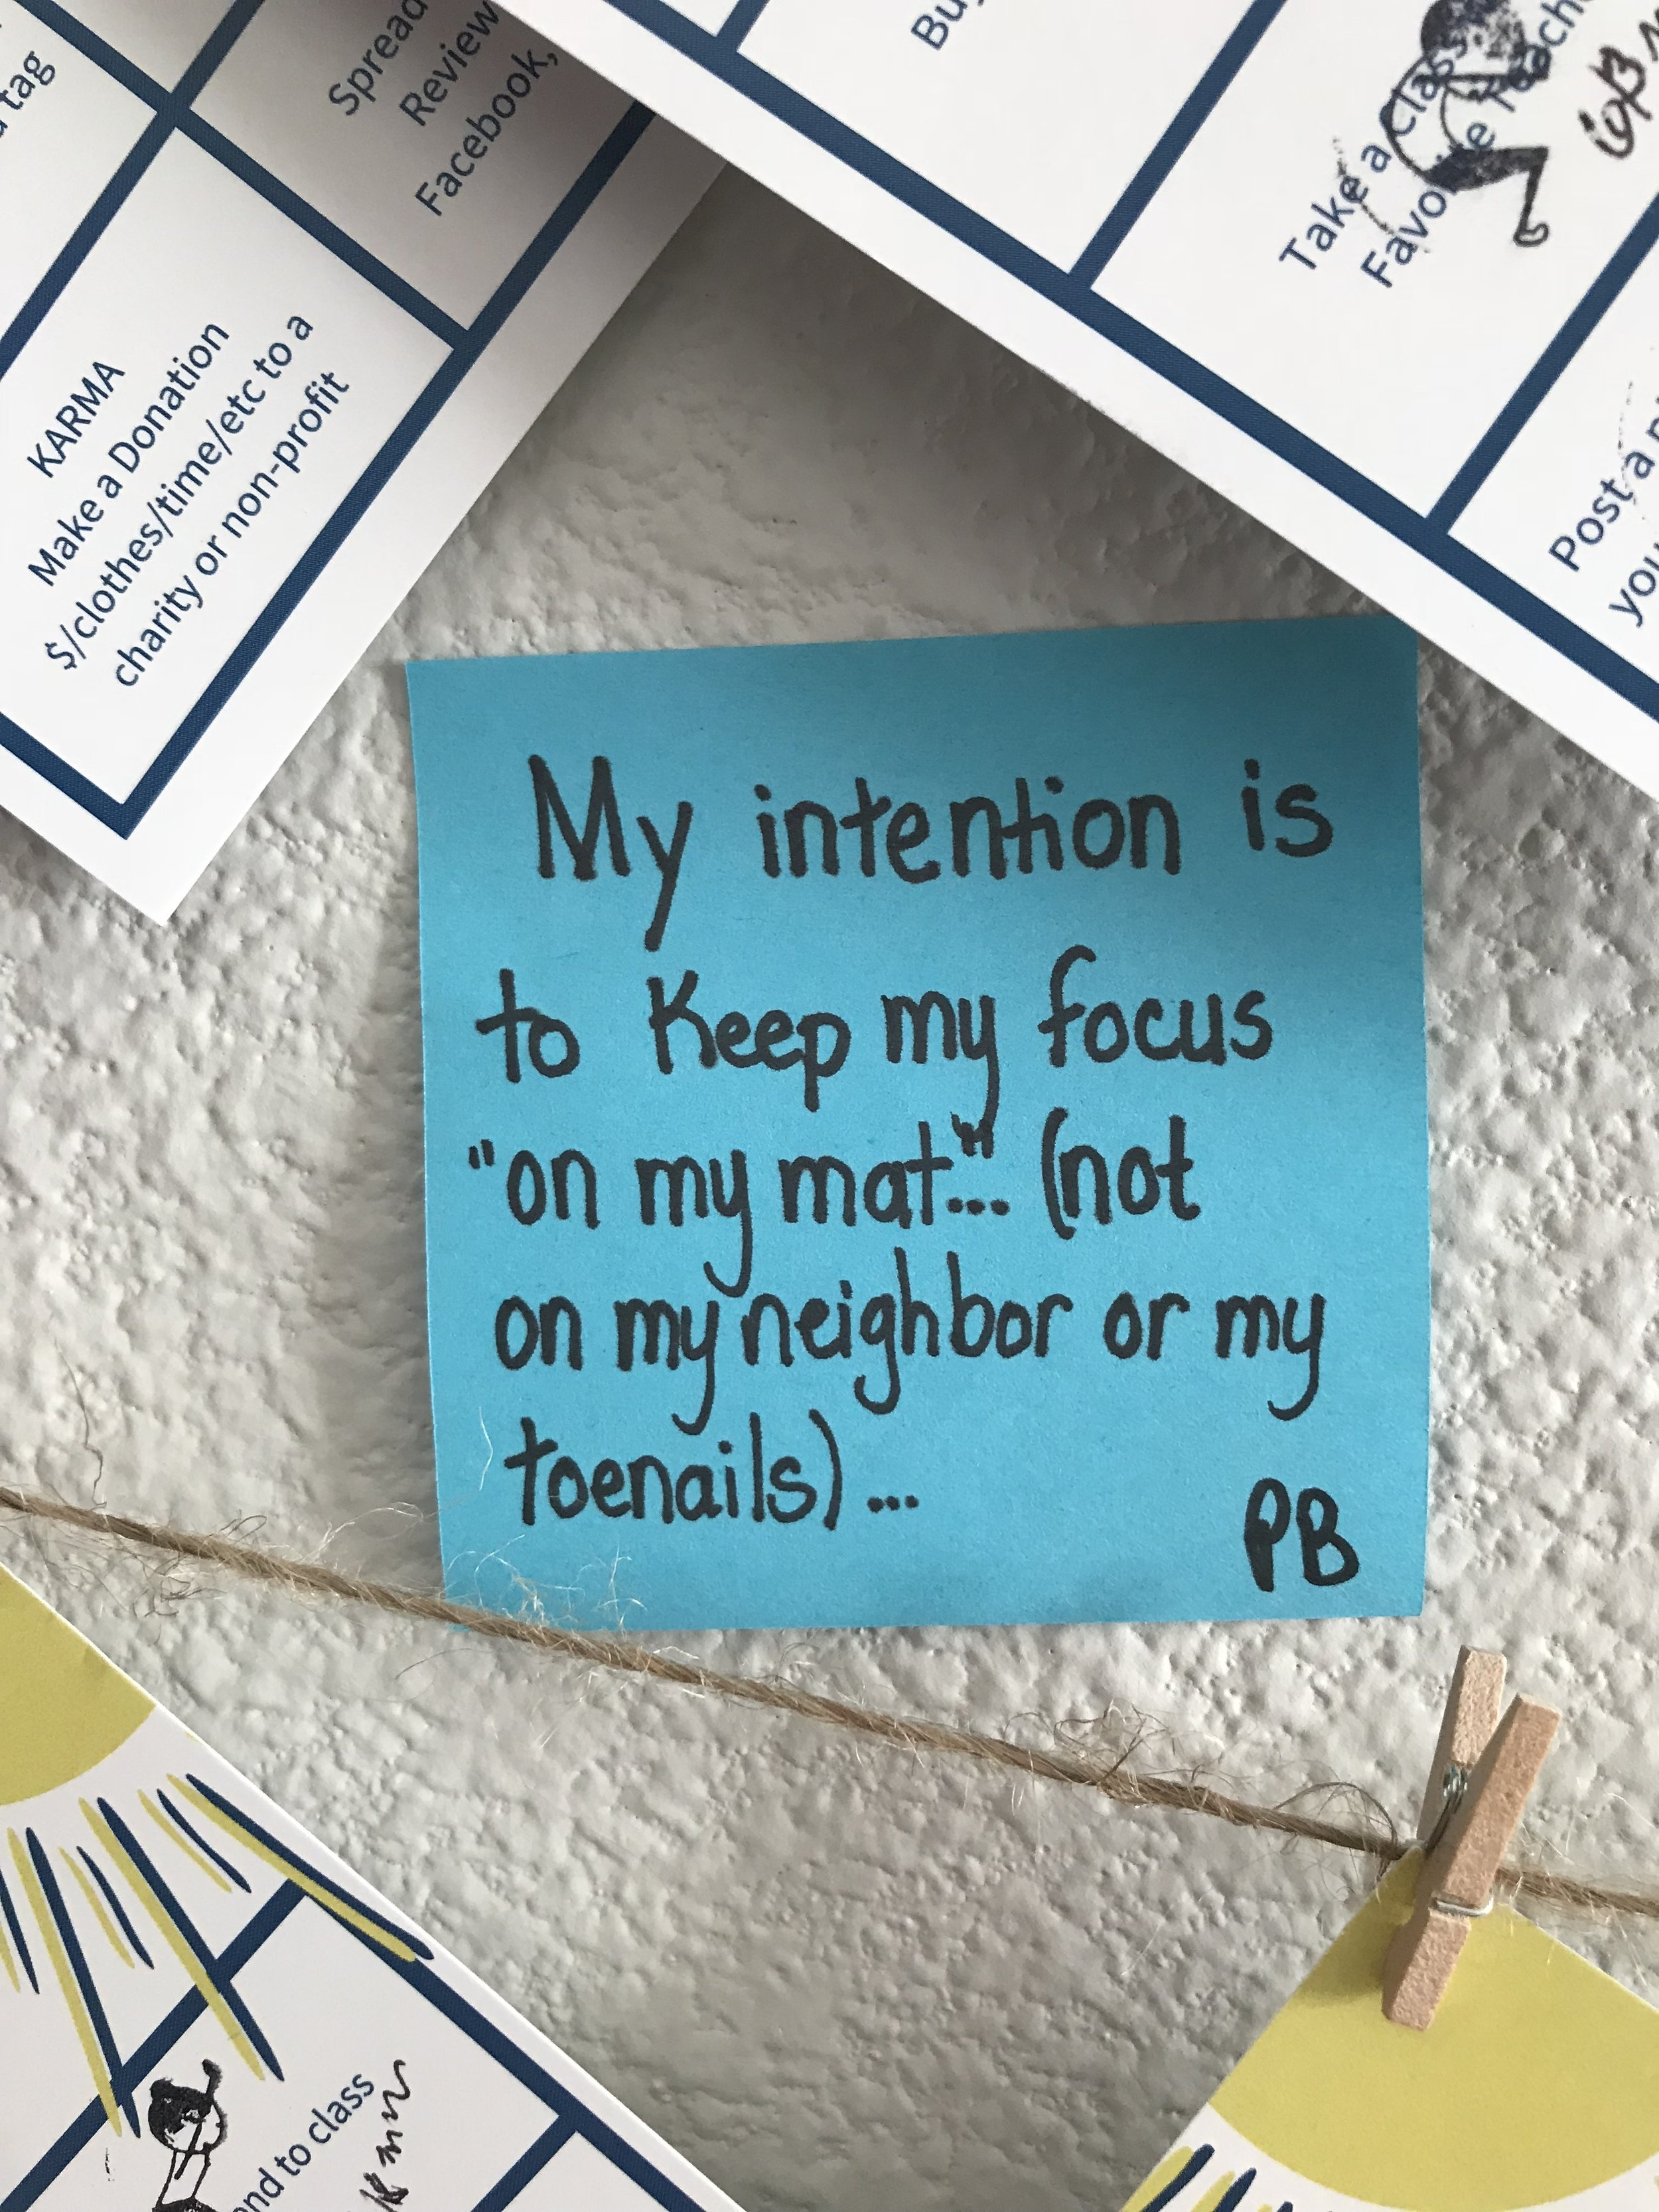 #awesome Summer Challenge intention!!